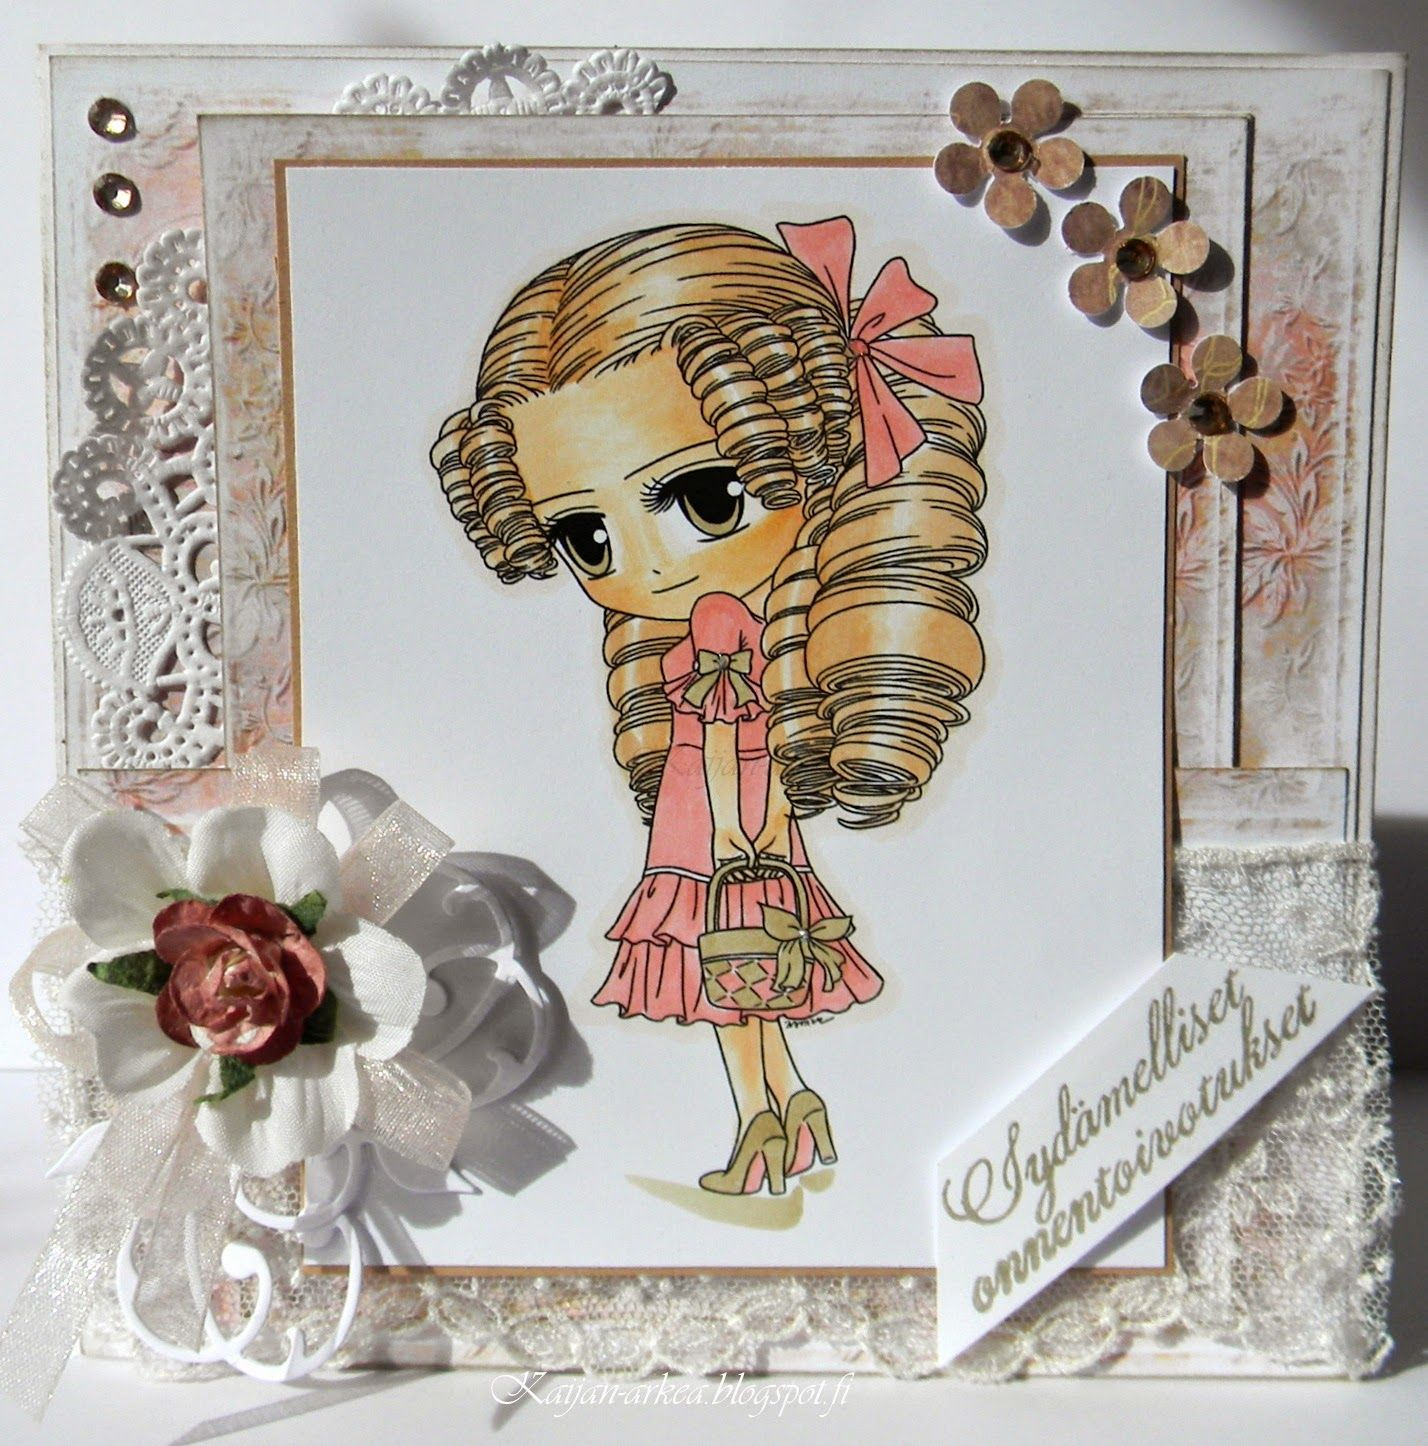 Väritys Copic Ciao:E50-E51-E00-E93 Hair:YR00 Dress:R32 and Y28 Kaijan-arkea: Missy Chic!